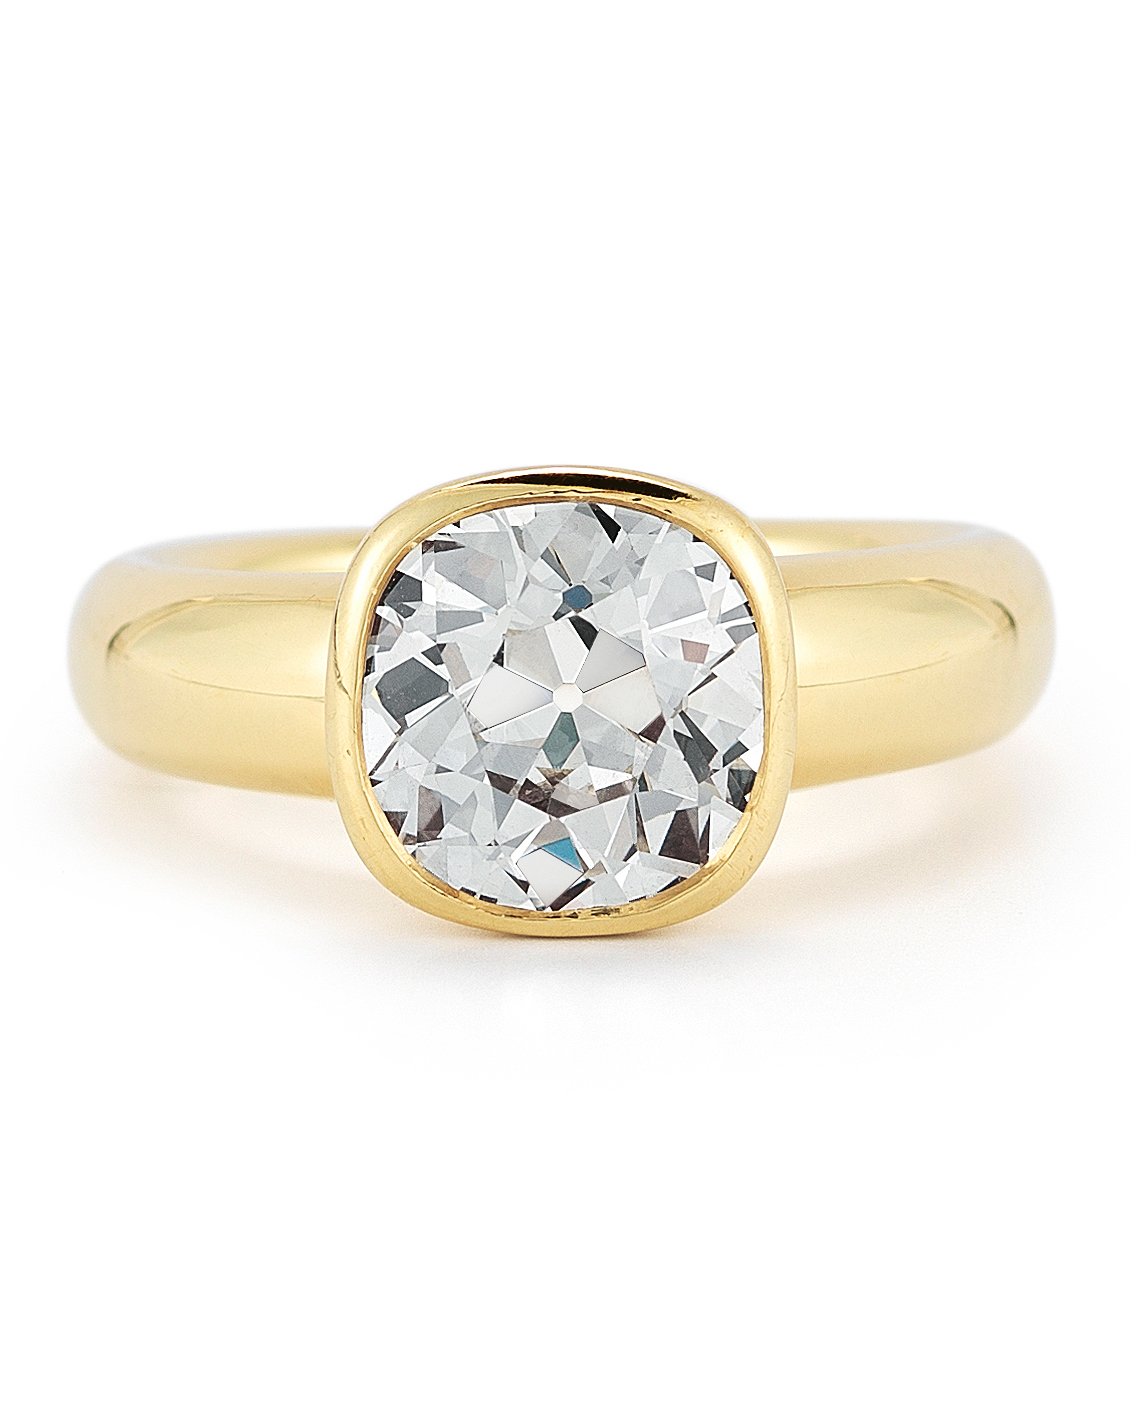 mcteigue-mclelland-yellow-gold-engagement-ring-old-mine-cut-solitiare-0816.jpg